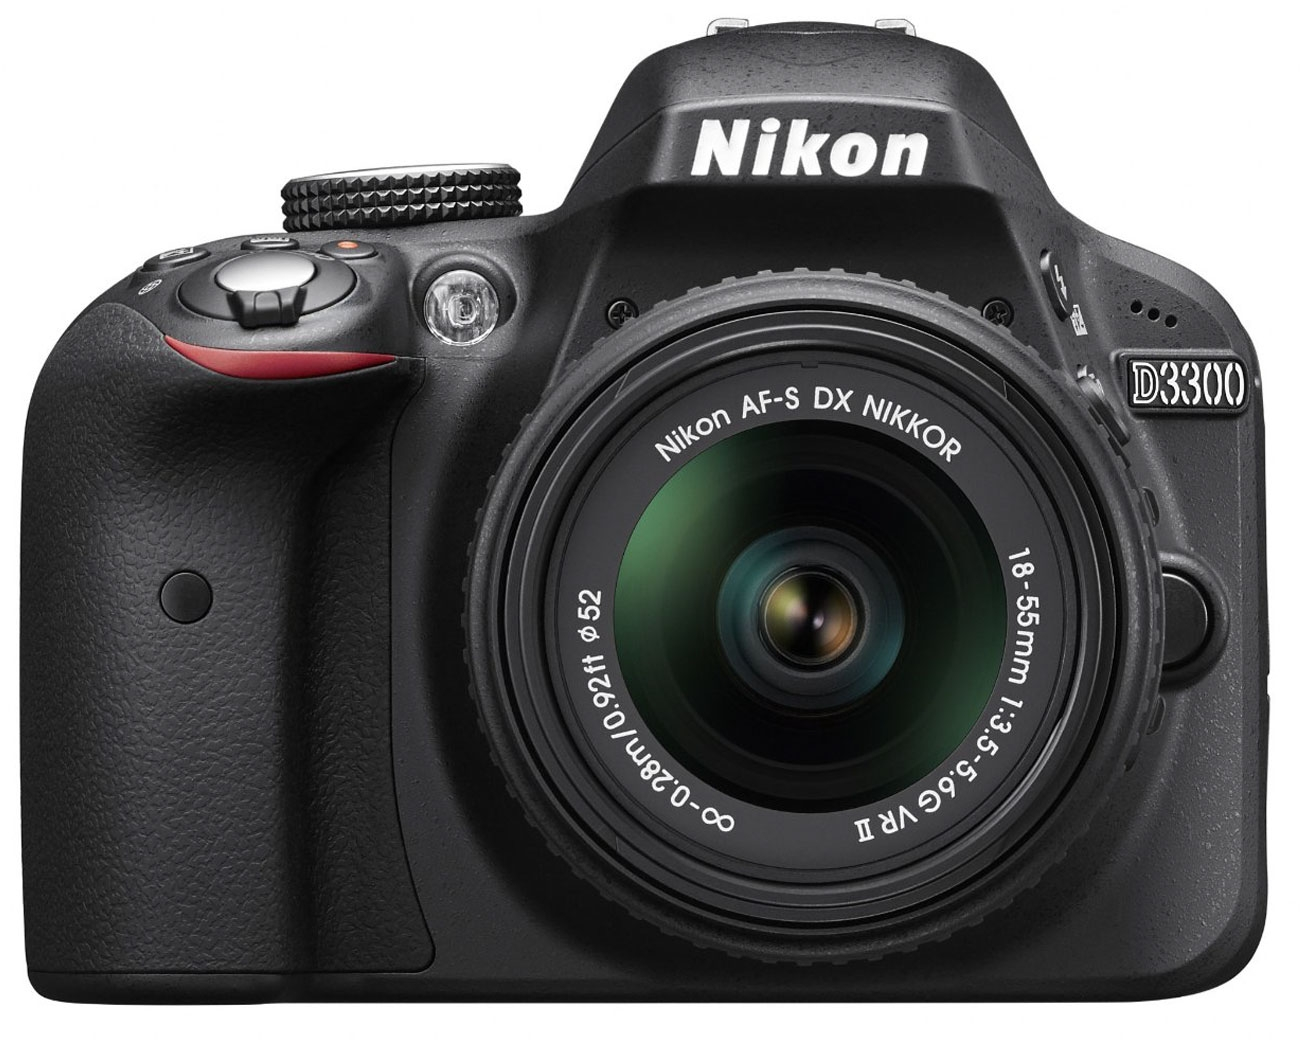 Image for Nikon D3300 24.2MP DSLR Camera With 18-55mm VR Lens Kit